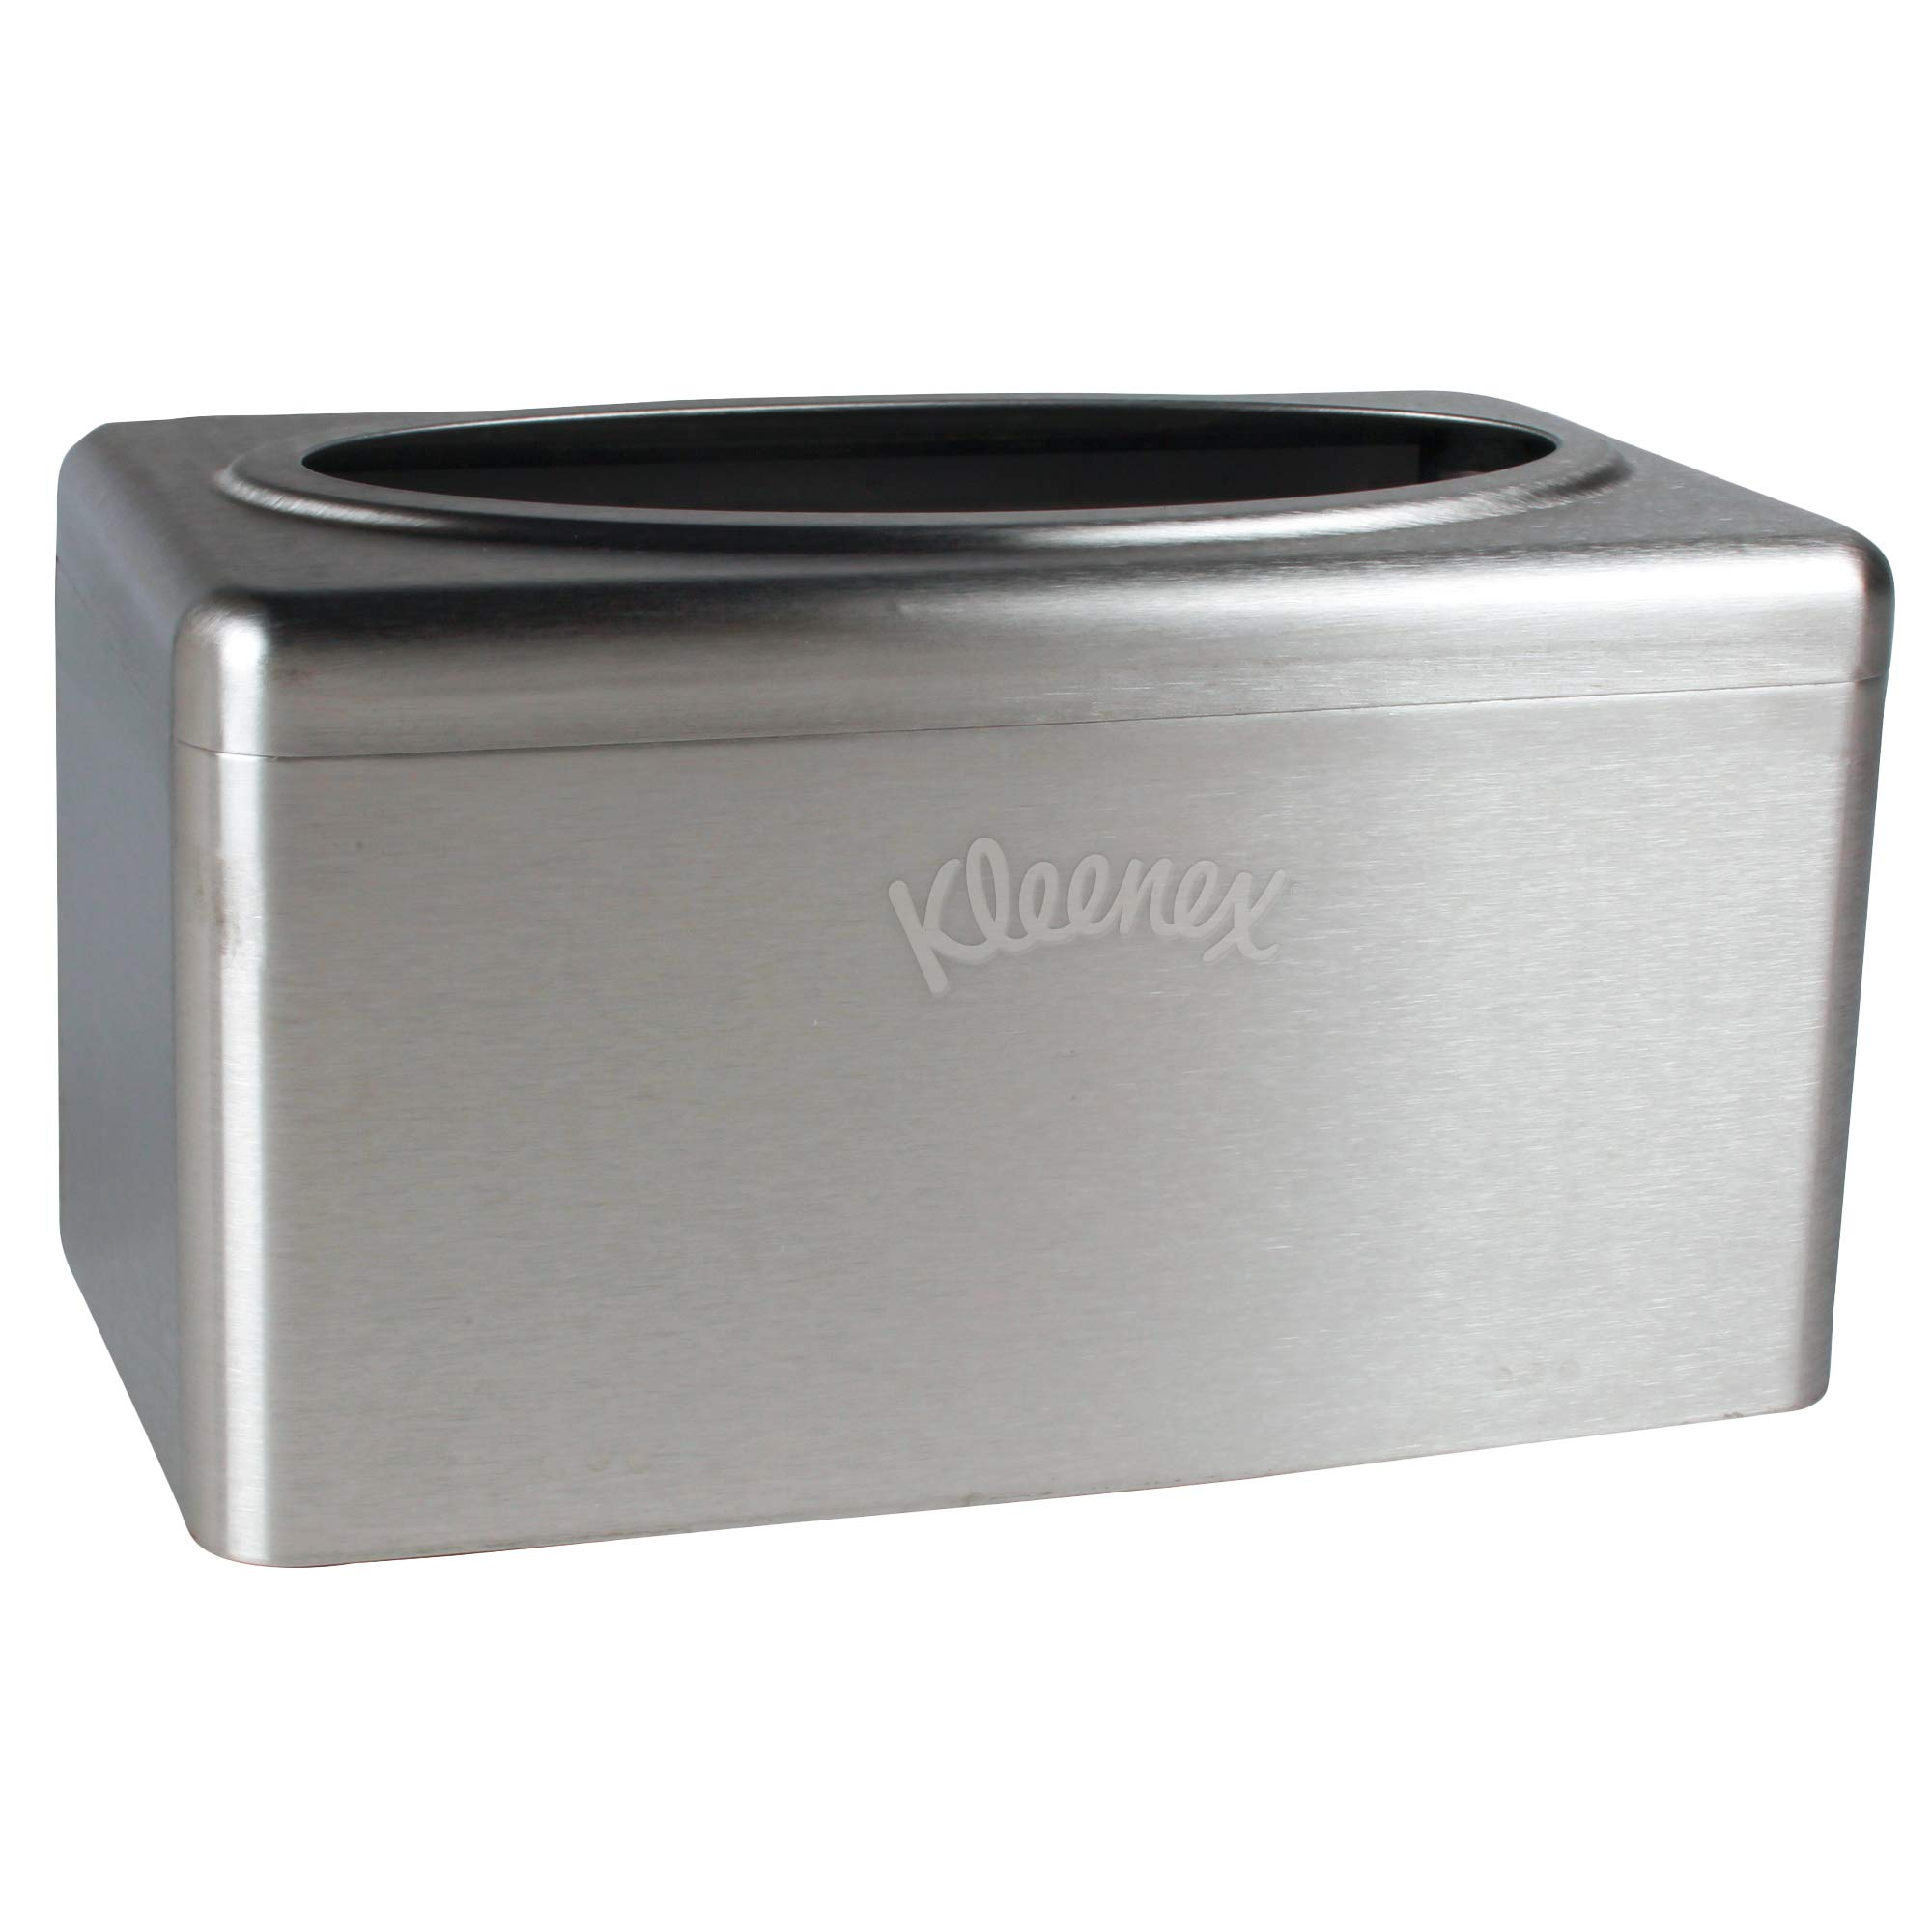 Kleenex Stainless Steel Countertop Box Towel Cover (09924), for Kleenex POP-UP Box Hand Towels, 2 per Case by Kimberly-Clark Professional